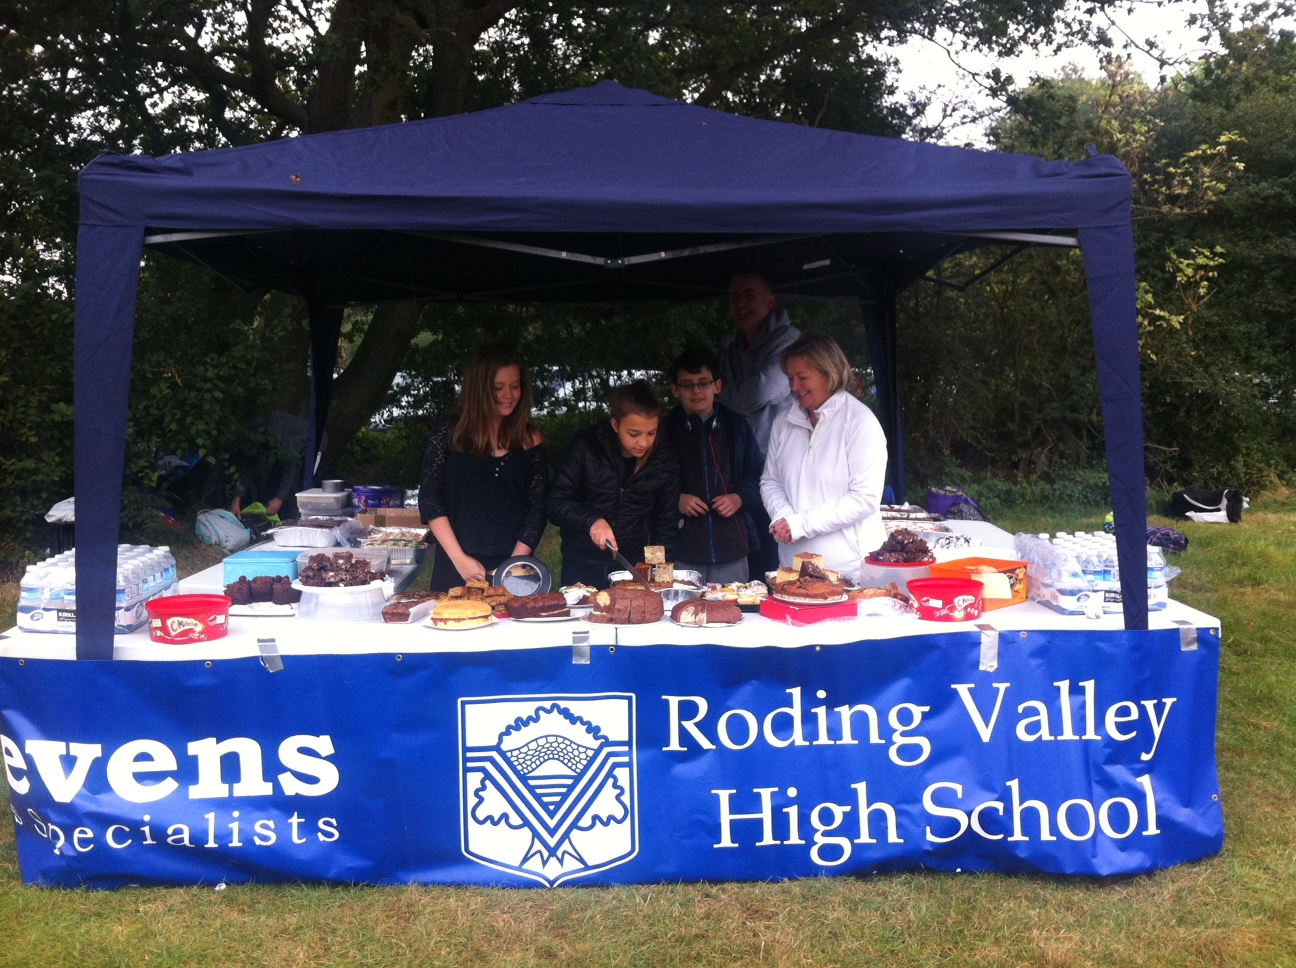 Roding Valley High School